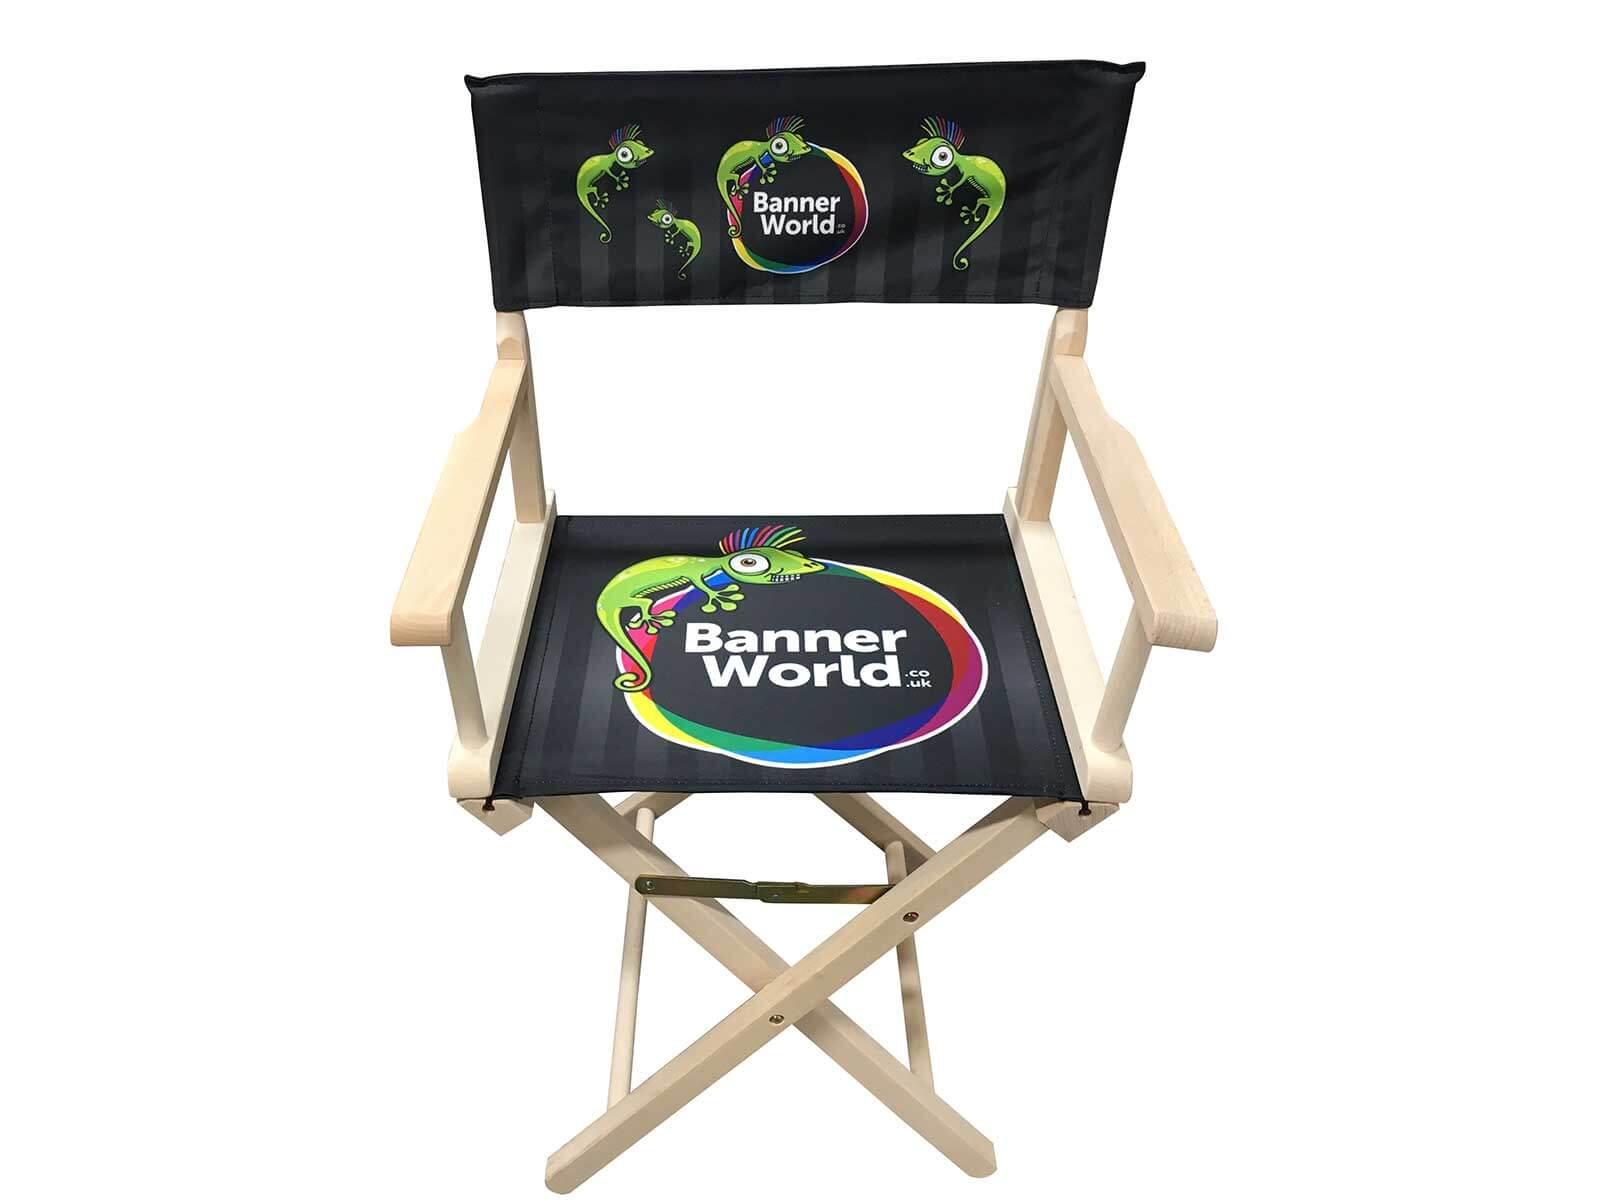 Personalized Directors Chair Personalised Directors Chair Full Colour Printed From Your Design